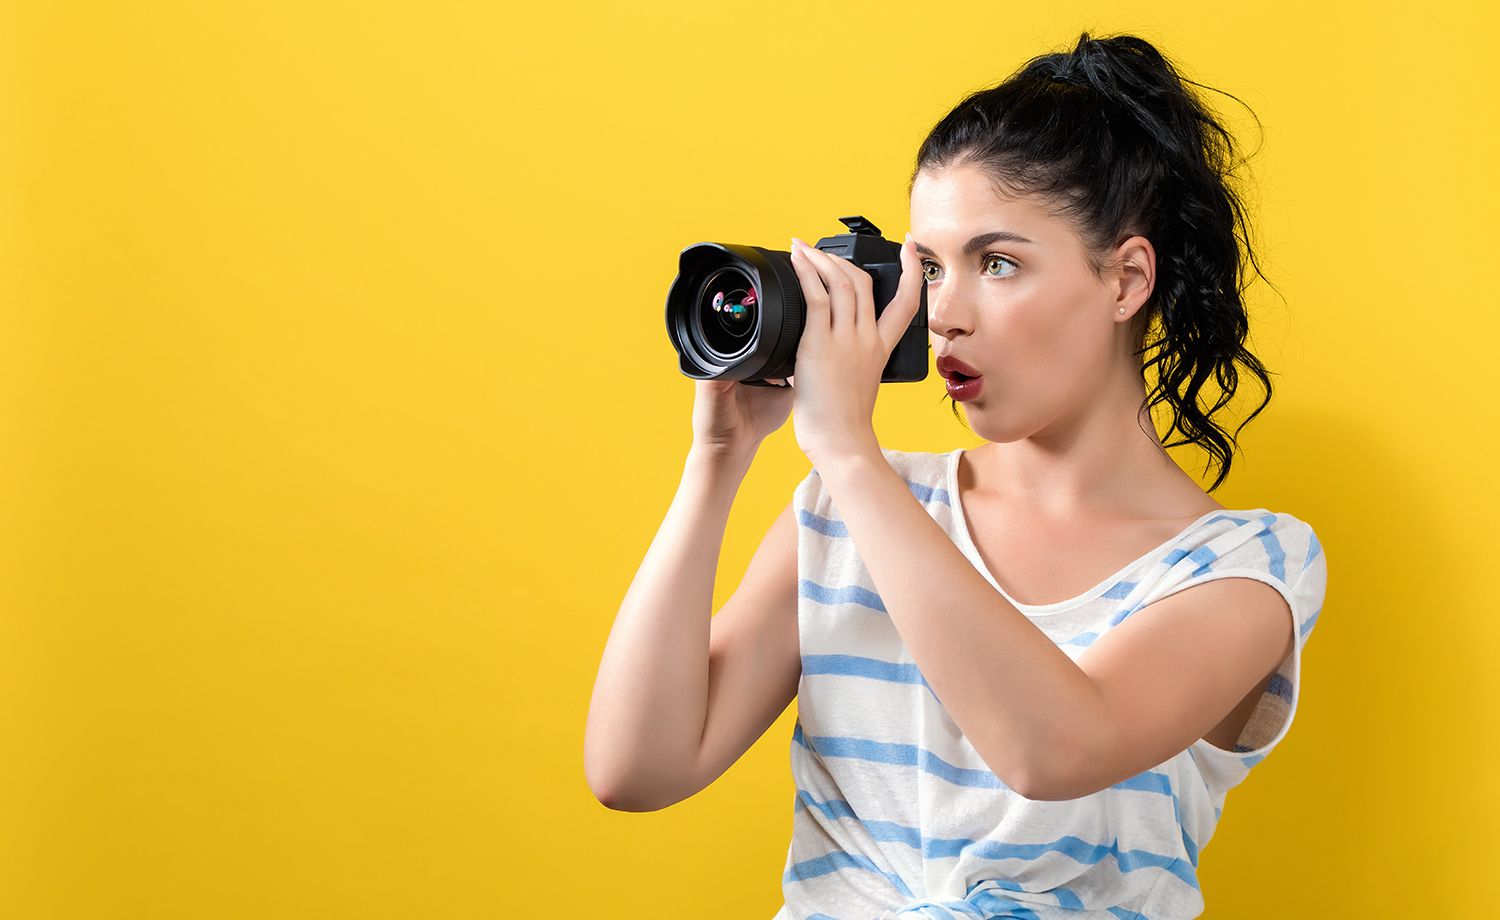 Are images ruining your website experience